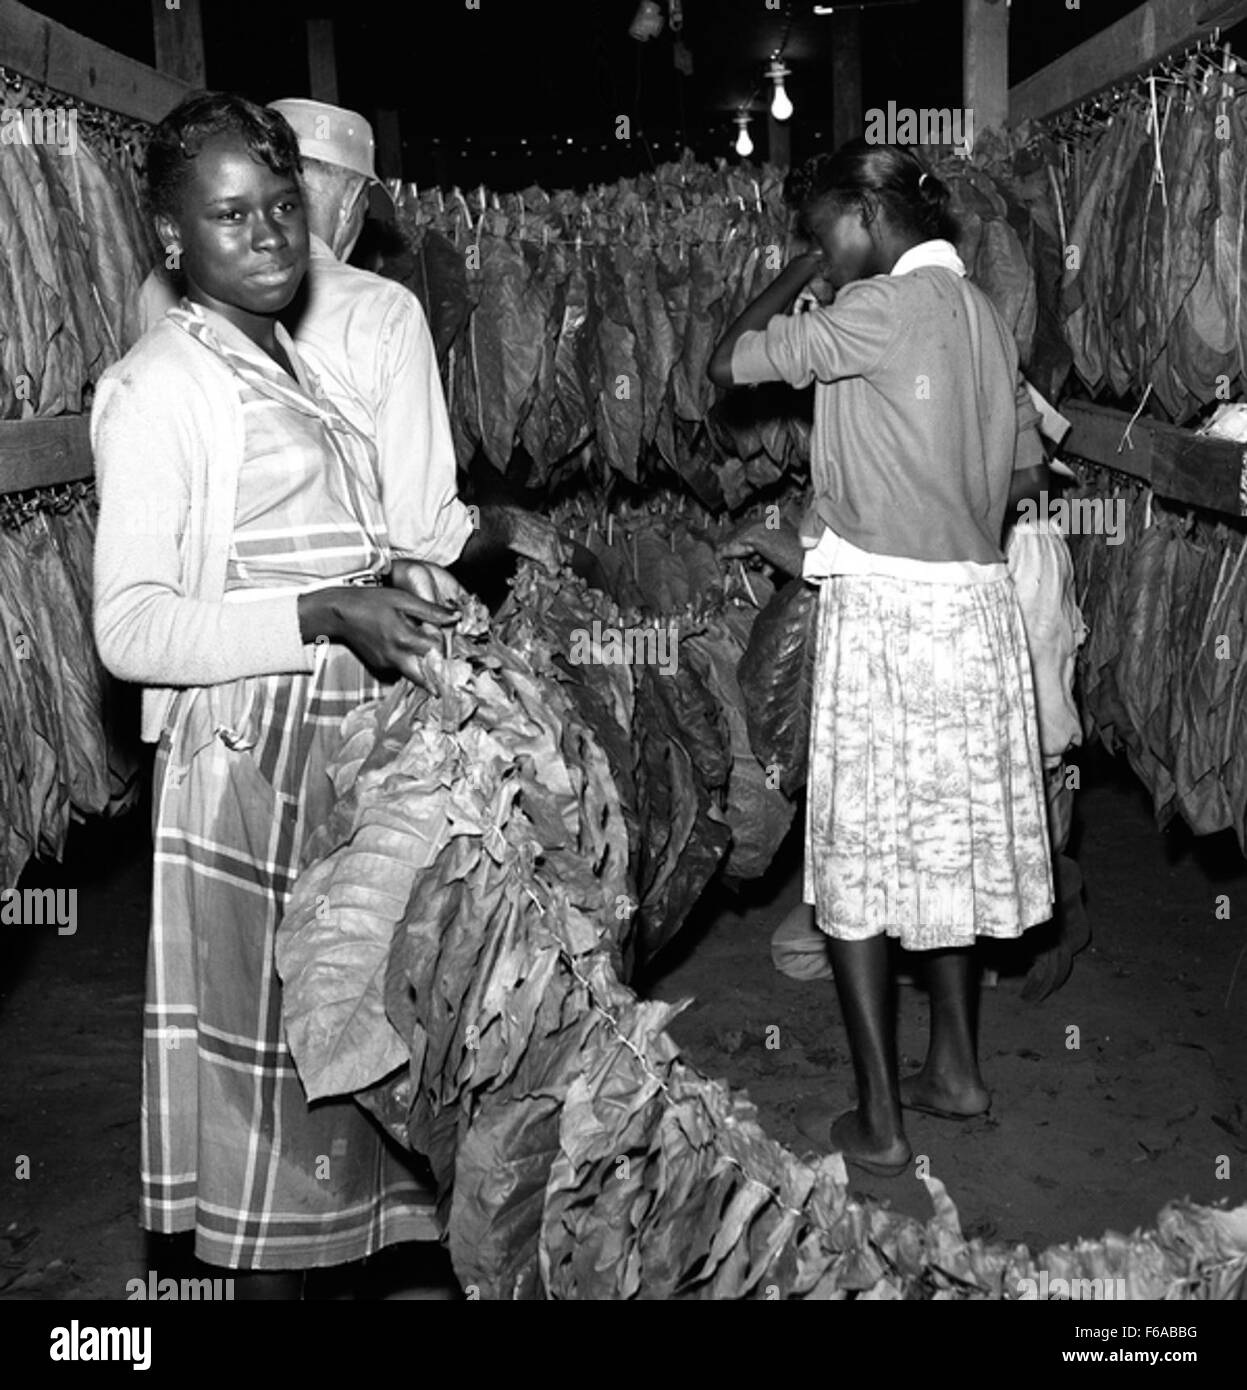 Tobacco workers hanging leaves at Charles Brinks' farm in Quincy - Stock Image